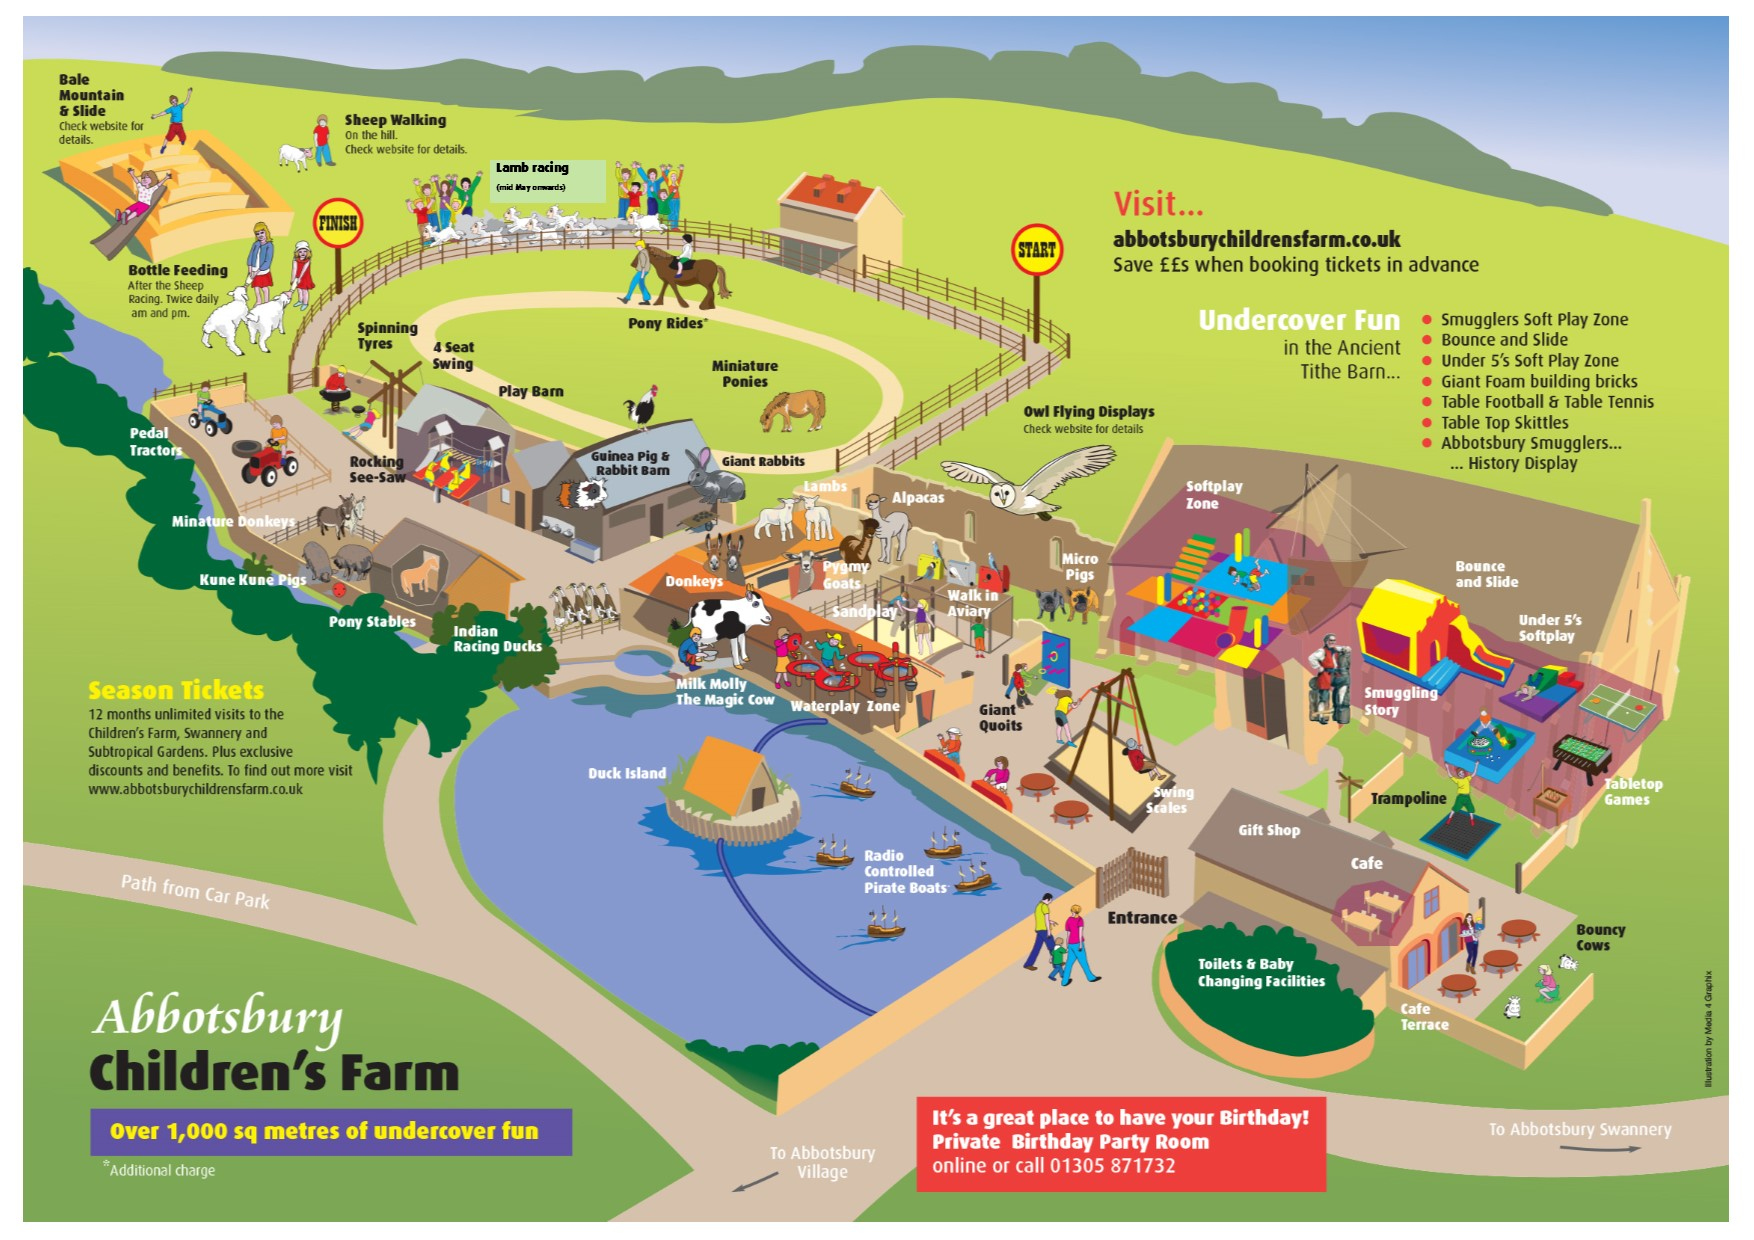 Abbotsbury Children's Farm map 2017